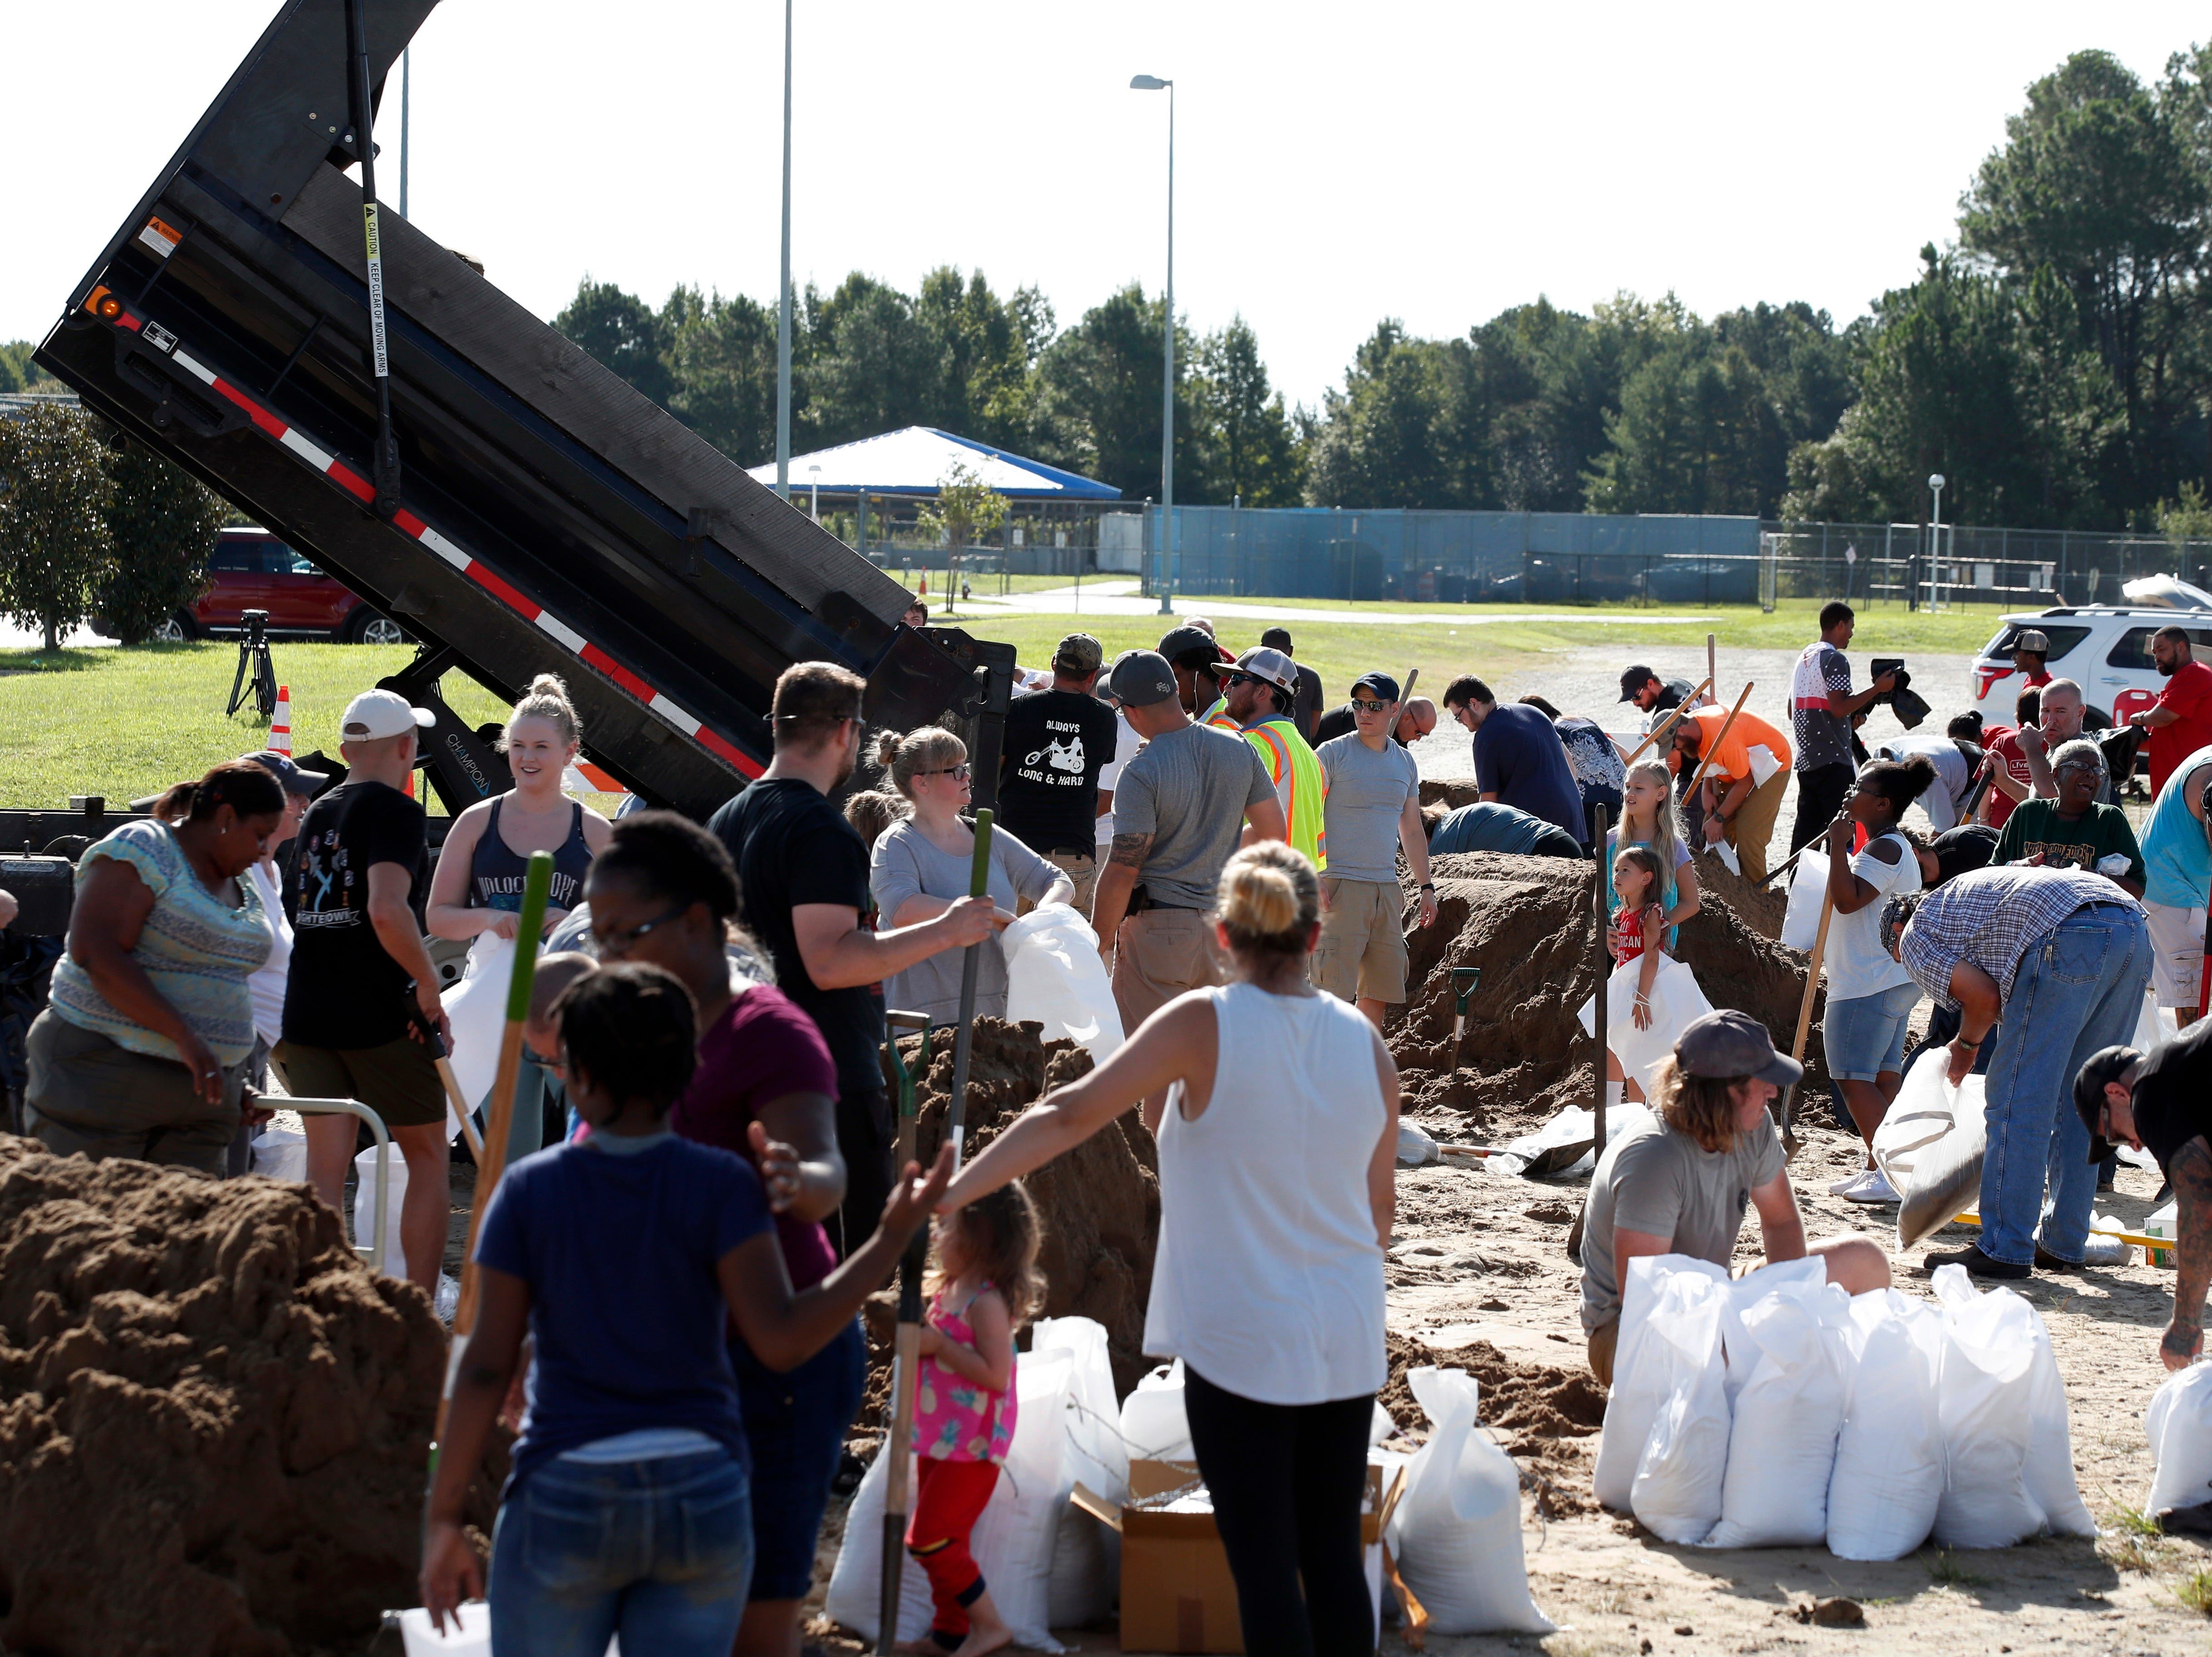 As a truck dumps more sand, residents fill sandbags, Wednesday, Sept. 12, 2018, in Virginia Beach, Va., as Hurricane Florence moves towards the eastern shore. The National Hurricane Center's projected track had Florence hovering off the southern North Carolina coast from Thursday night until landfall Saturday morning or so, about a day later than previously expected. The track also shifted somewhat south and west, throwing Georgia into peril as Florence moves inland.